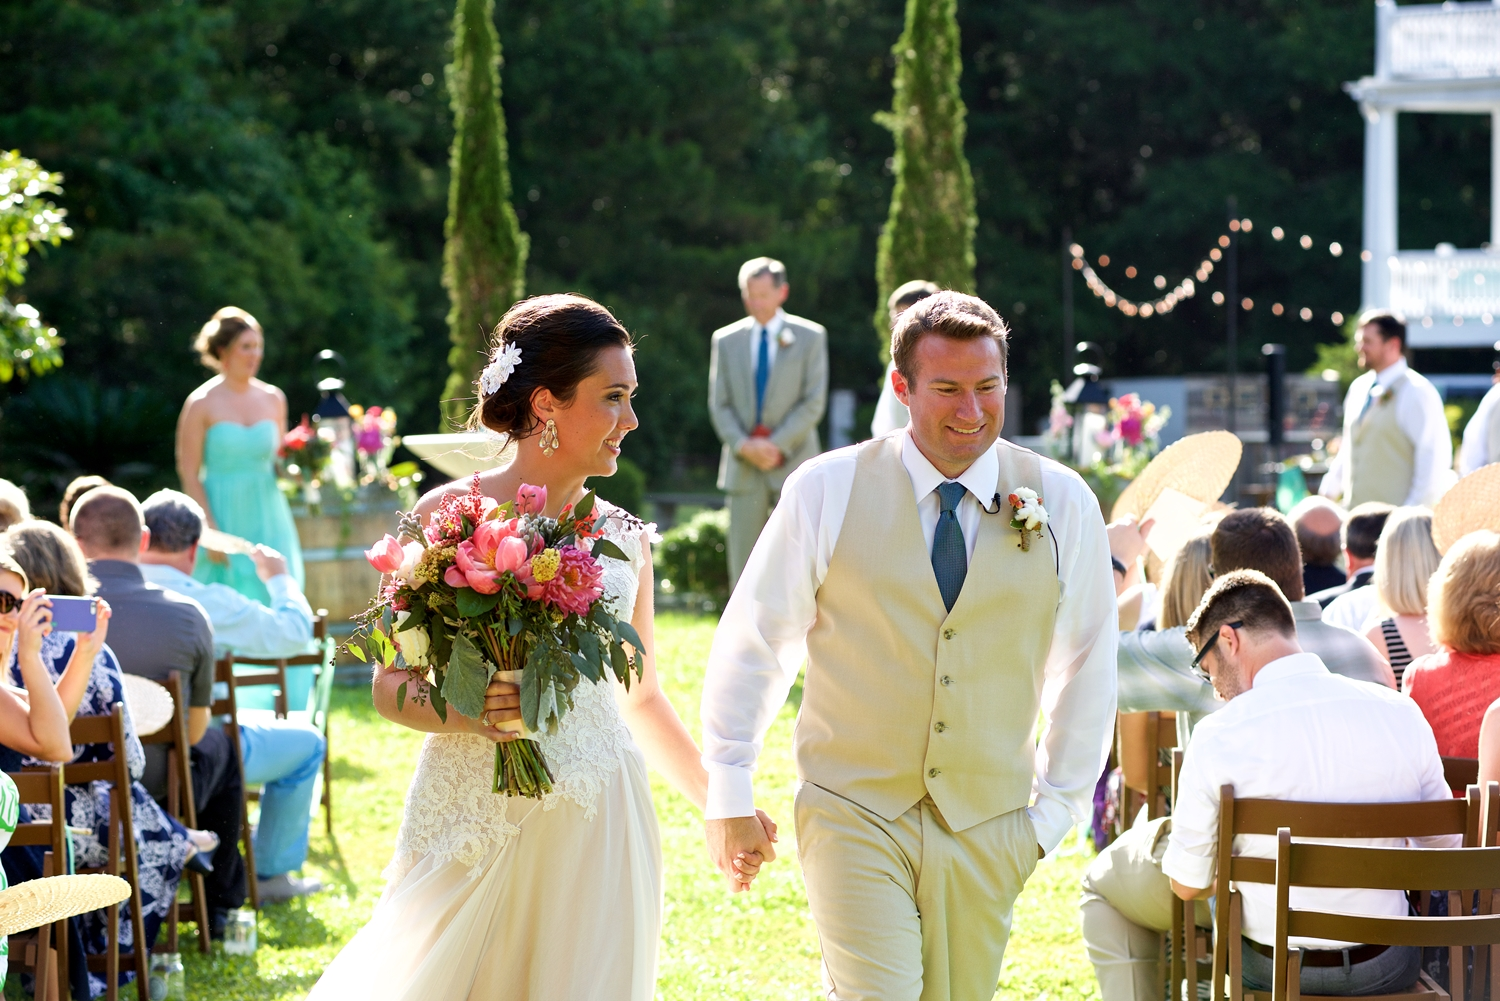 Christine Kohler + Brook Bristow's Outdoor wedding ceremony at Old Wide Awake Plantation